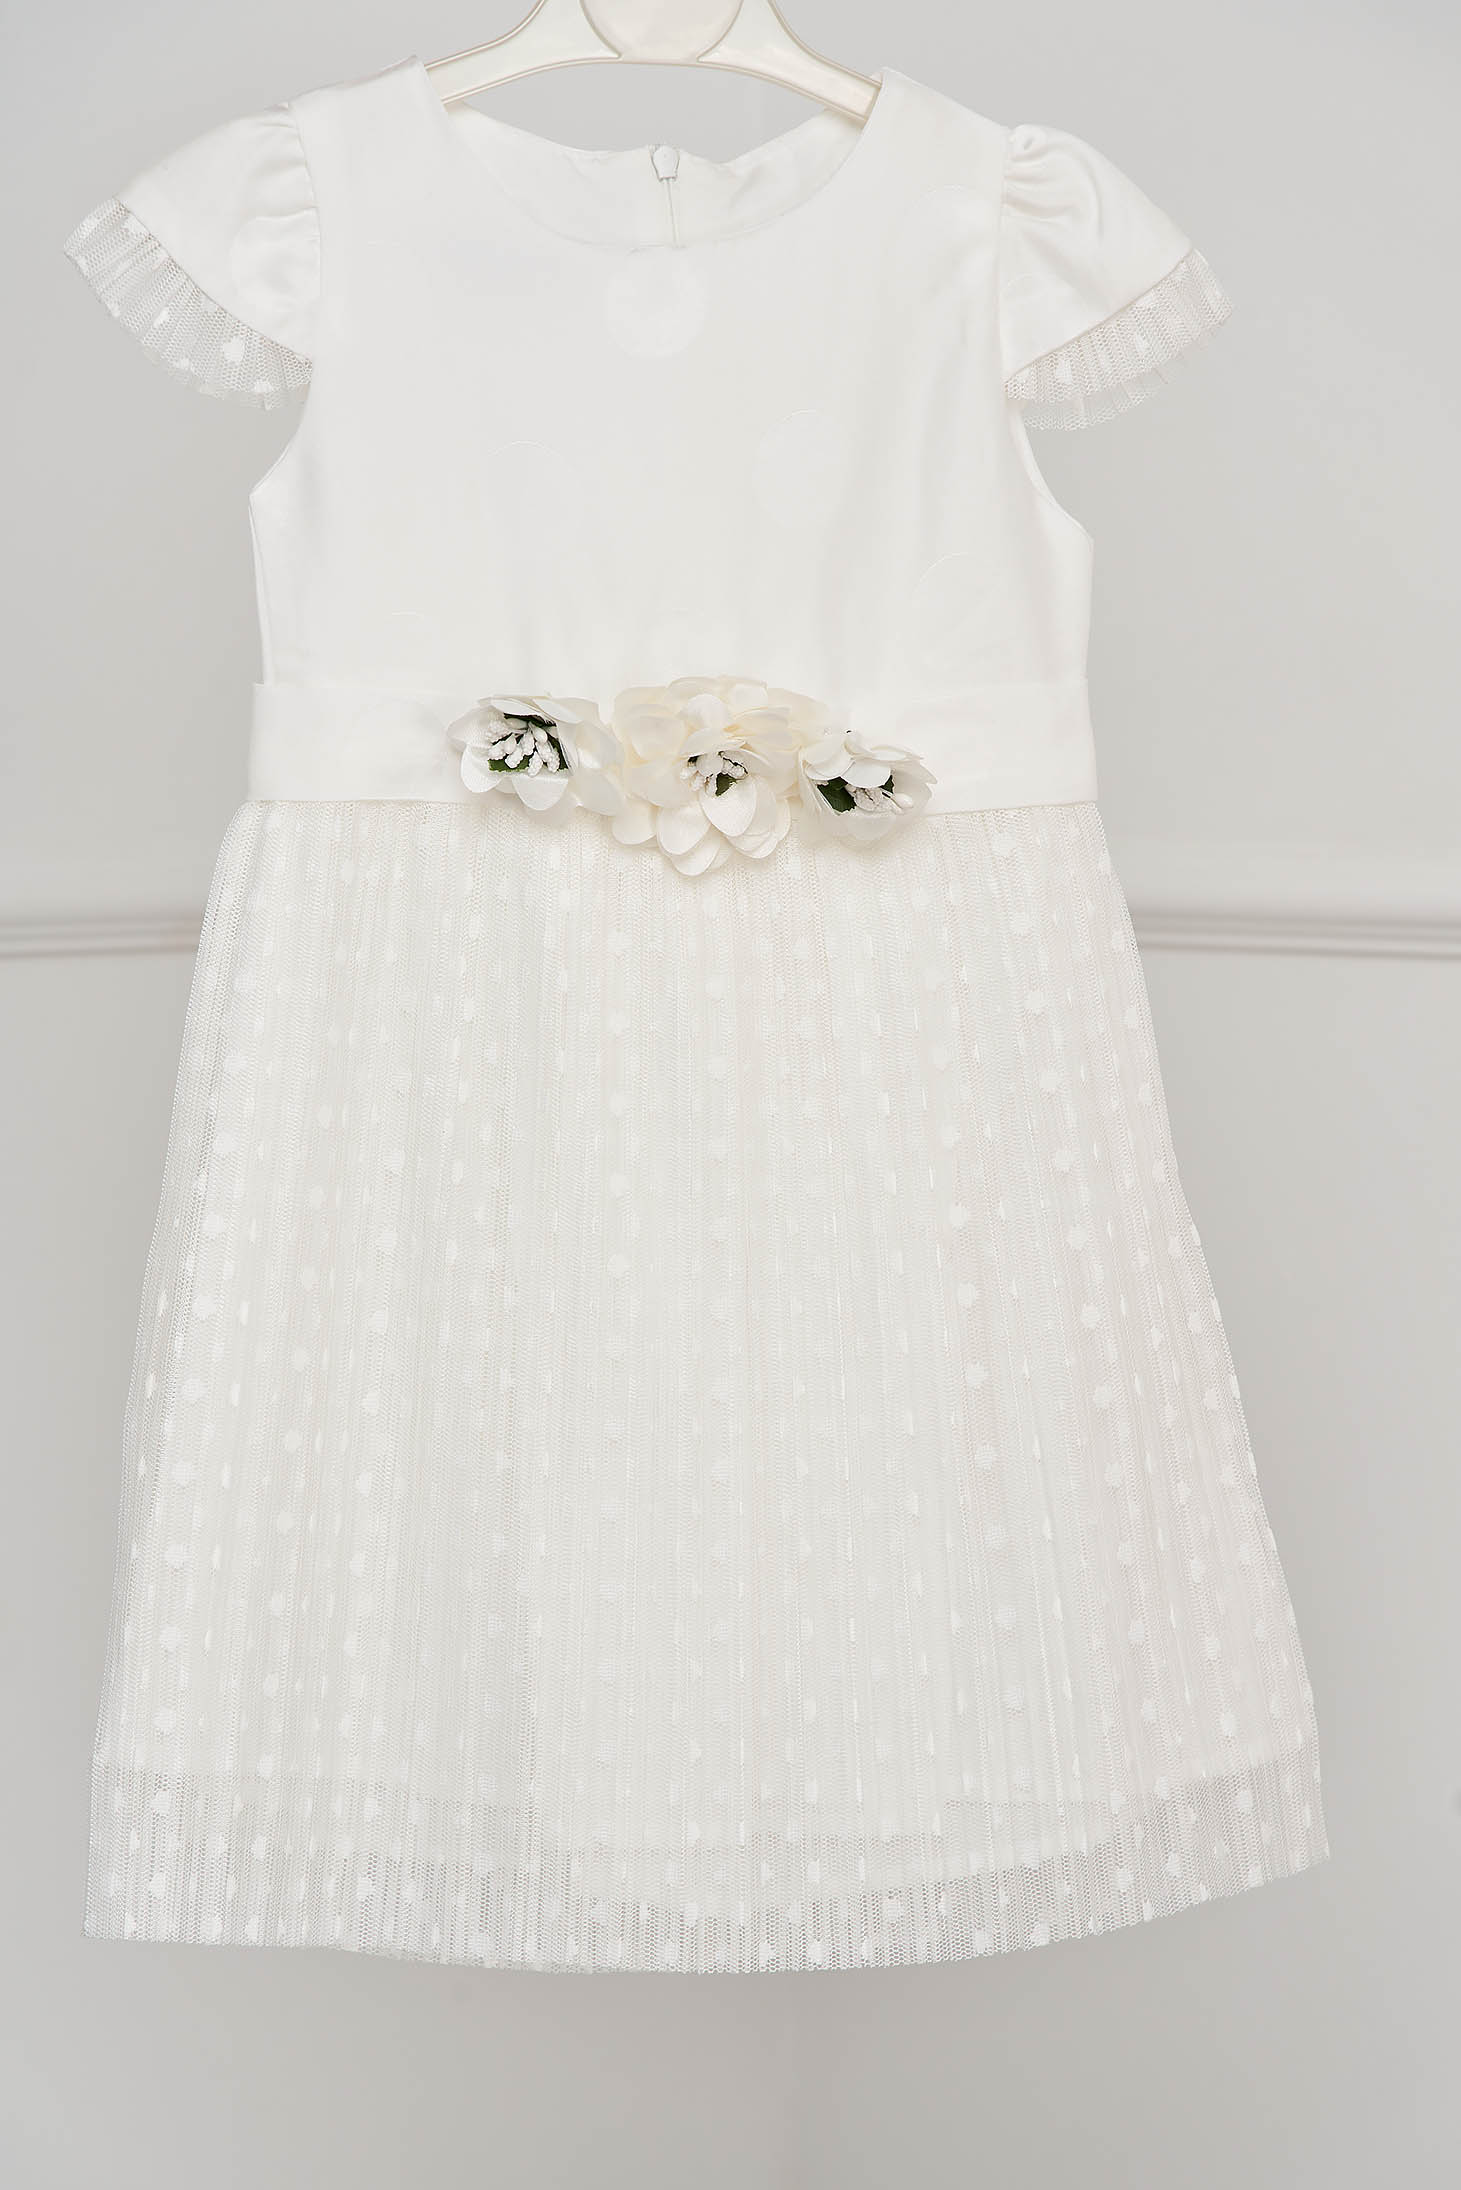 White dress occasional cloche laced folded up accessorized with breastpin